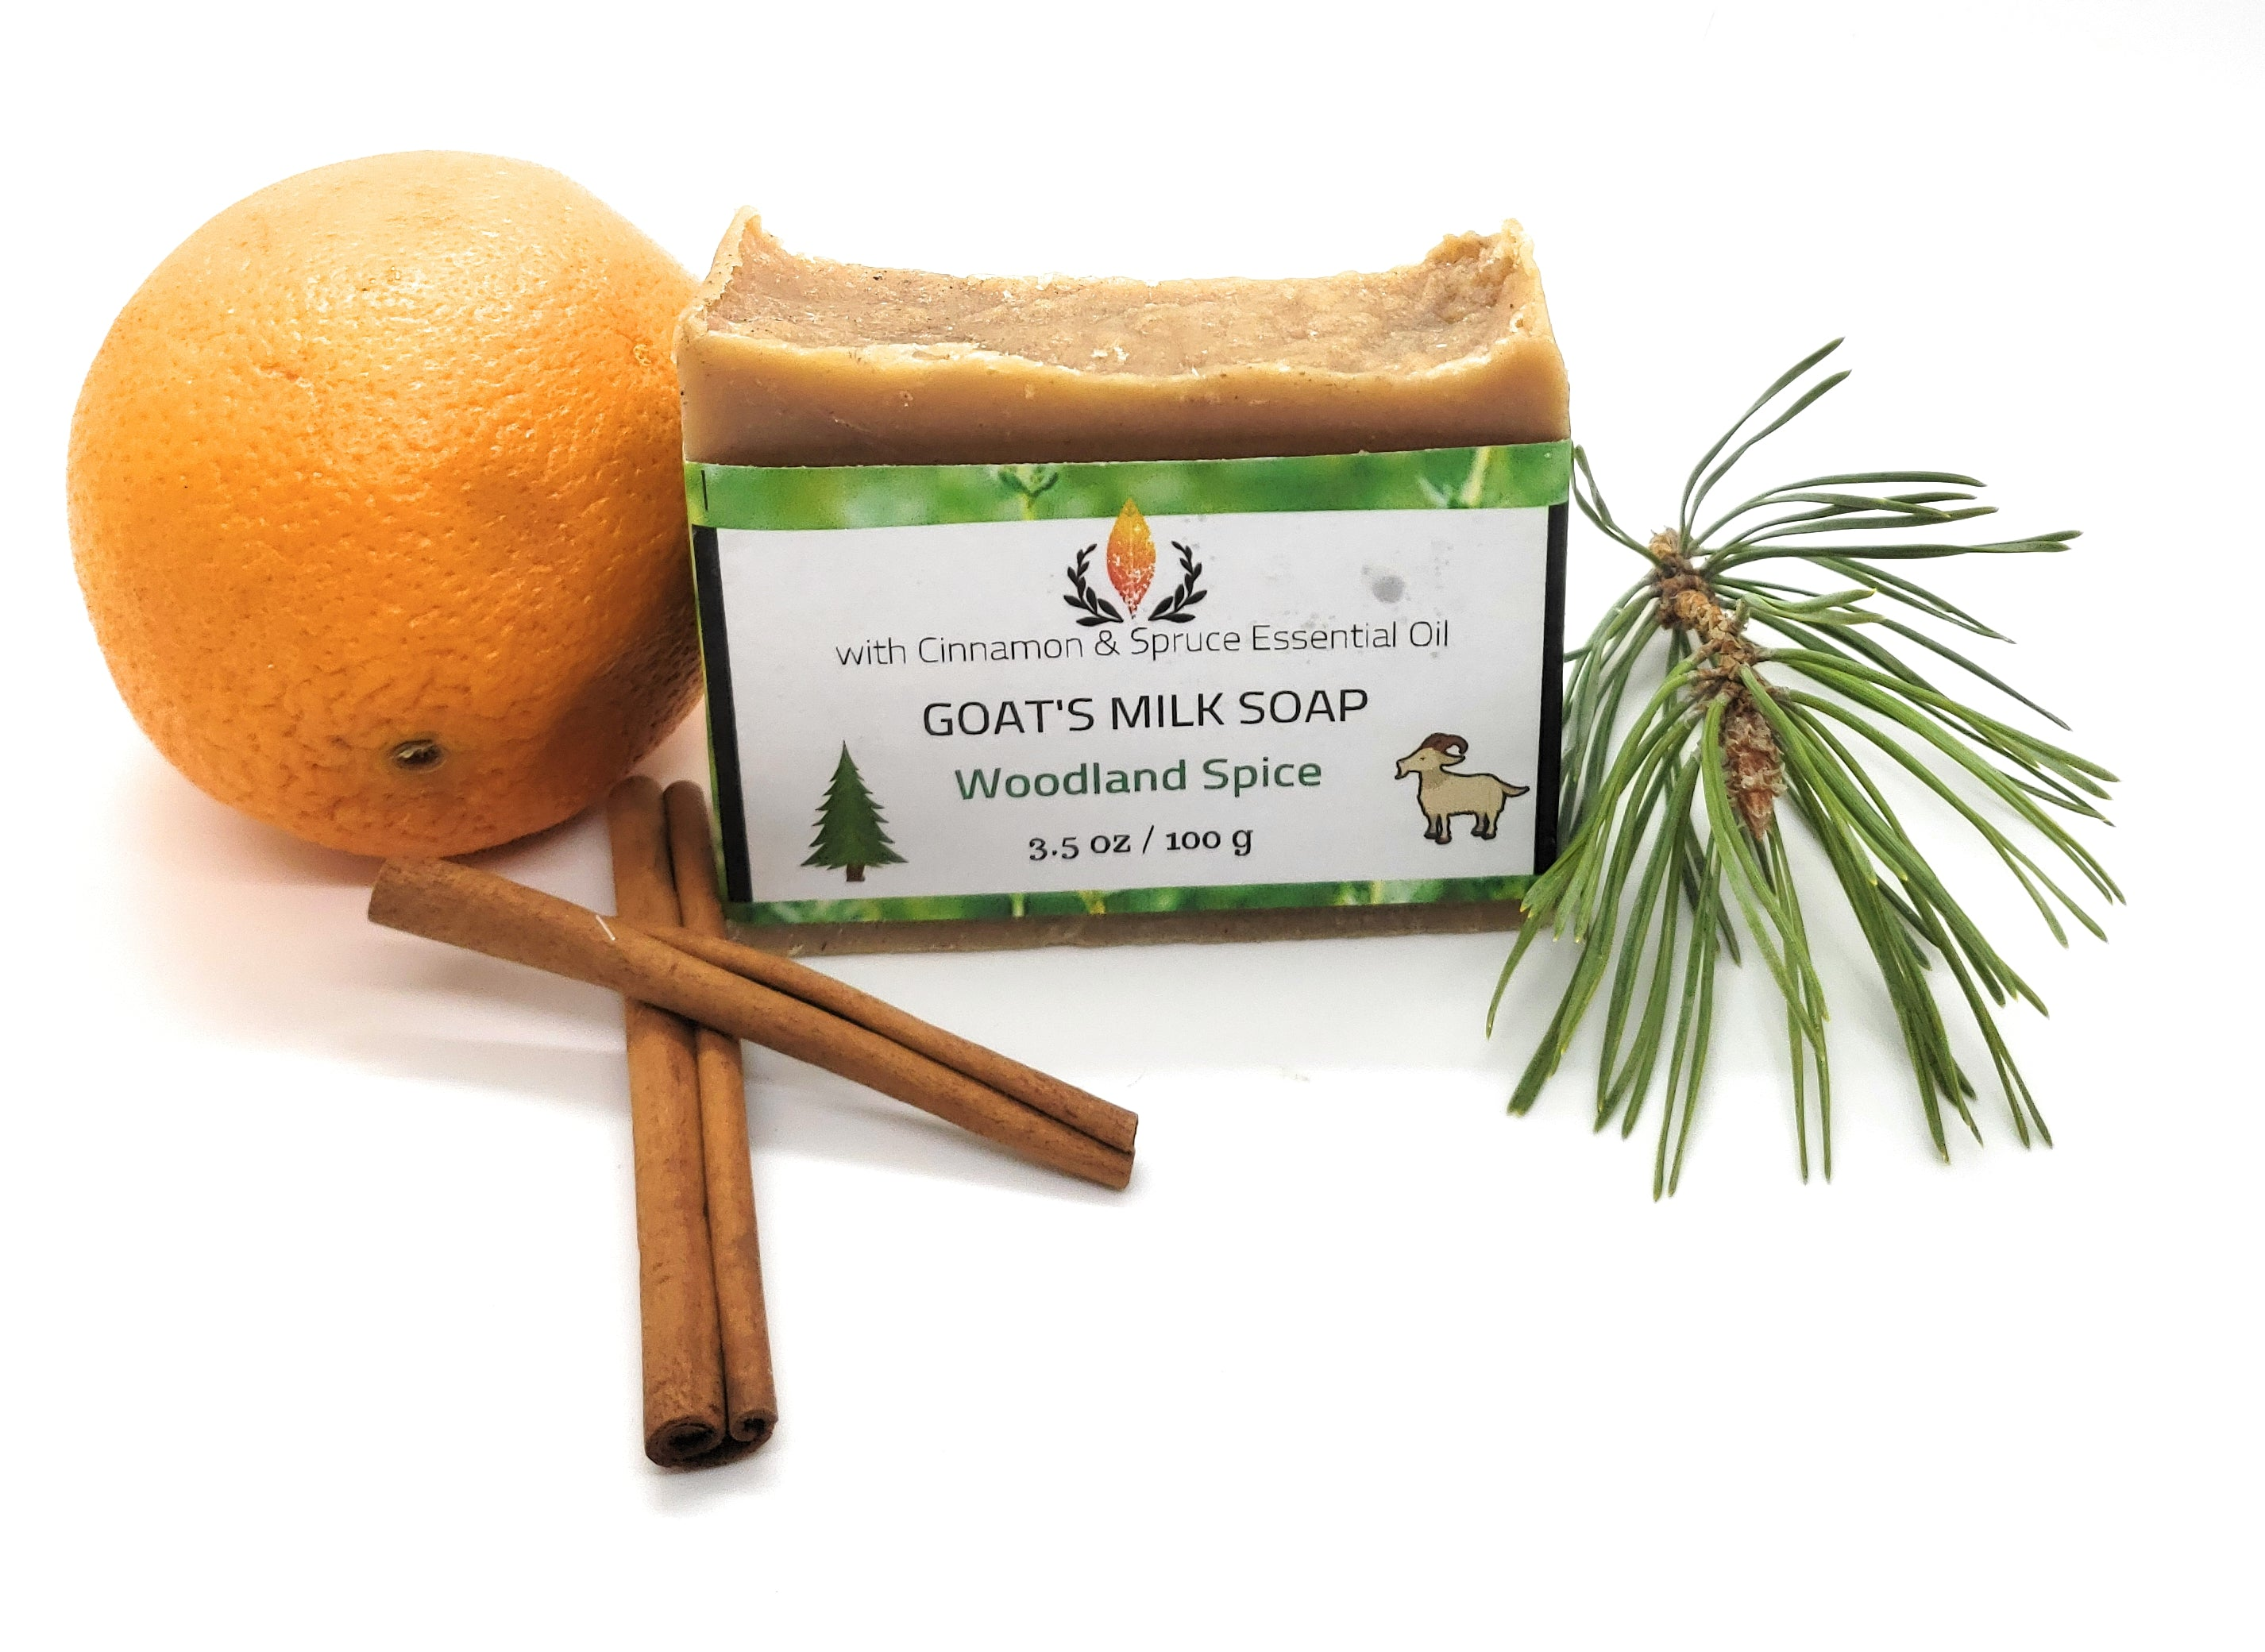 Goat's Milk Soap, Woodland Spice